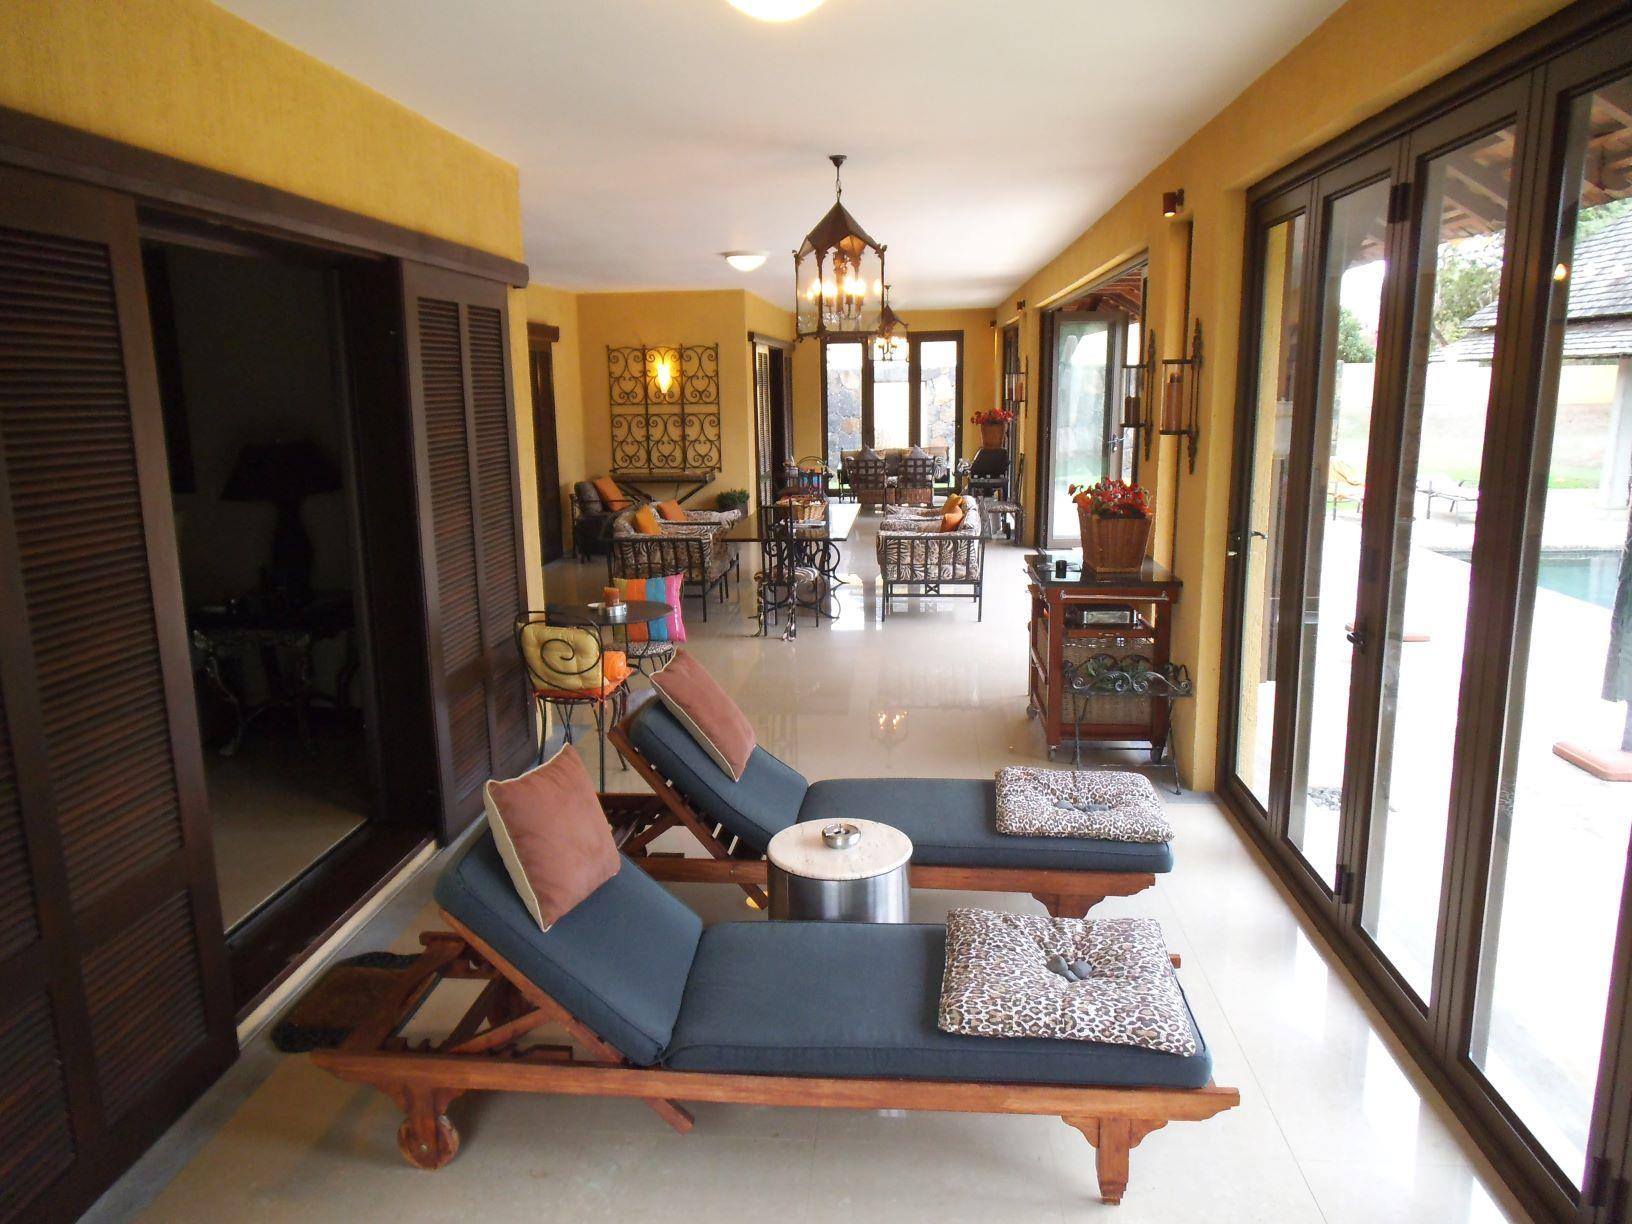 3 Bedroom House For Sale in Flic En Flac